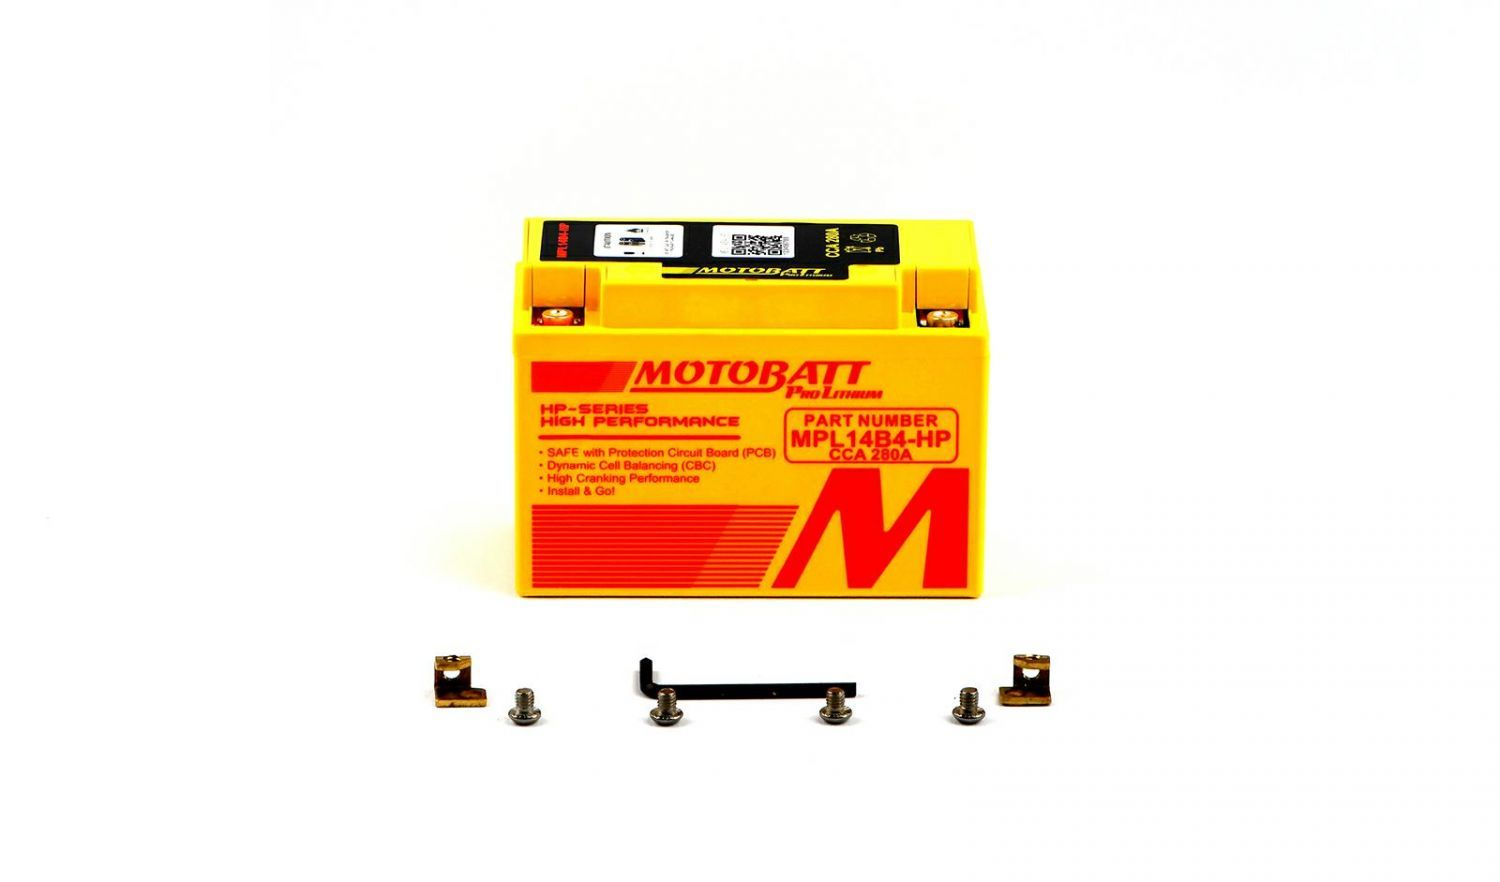 Motobatt Lithium Batteries - 501146MR image